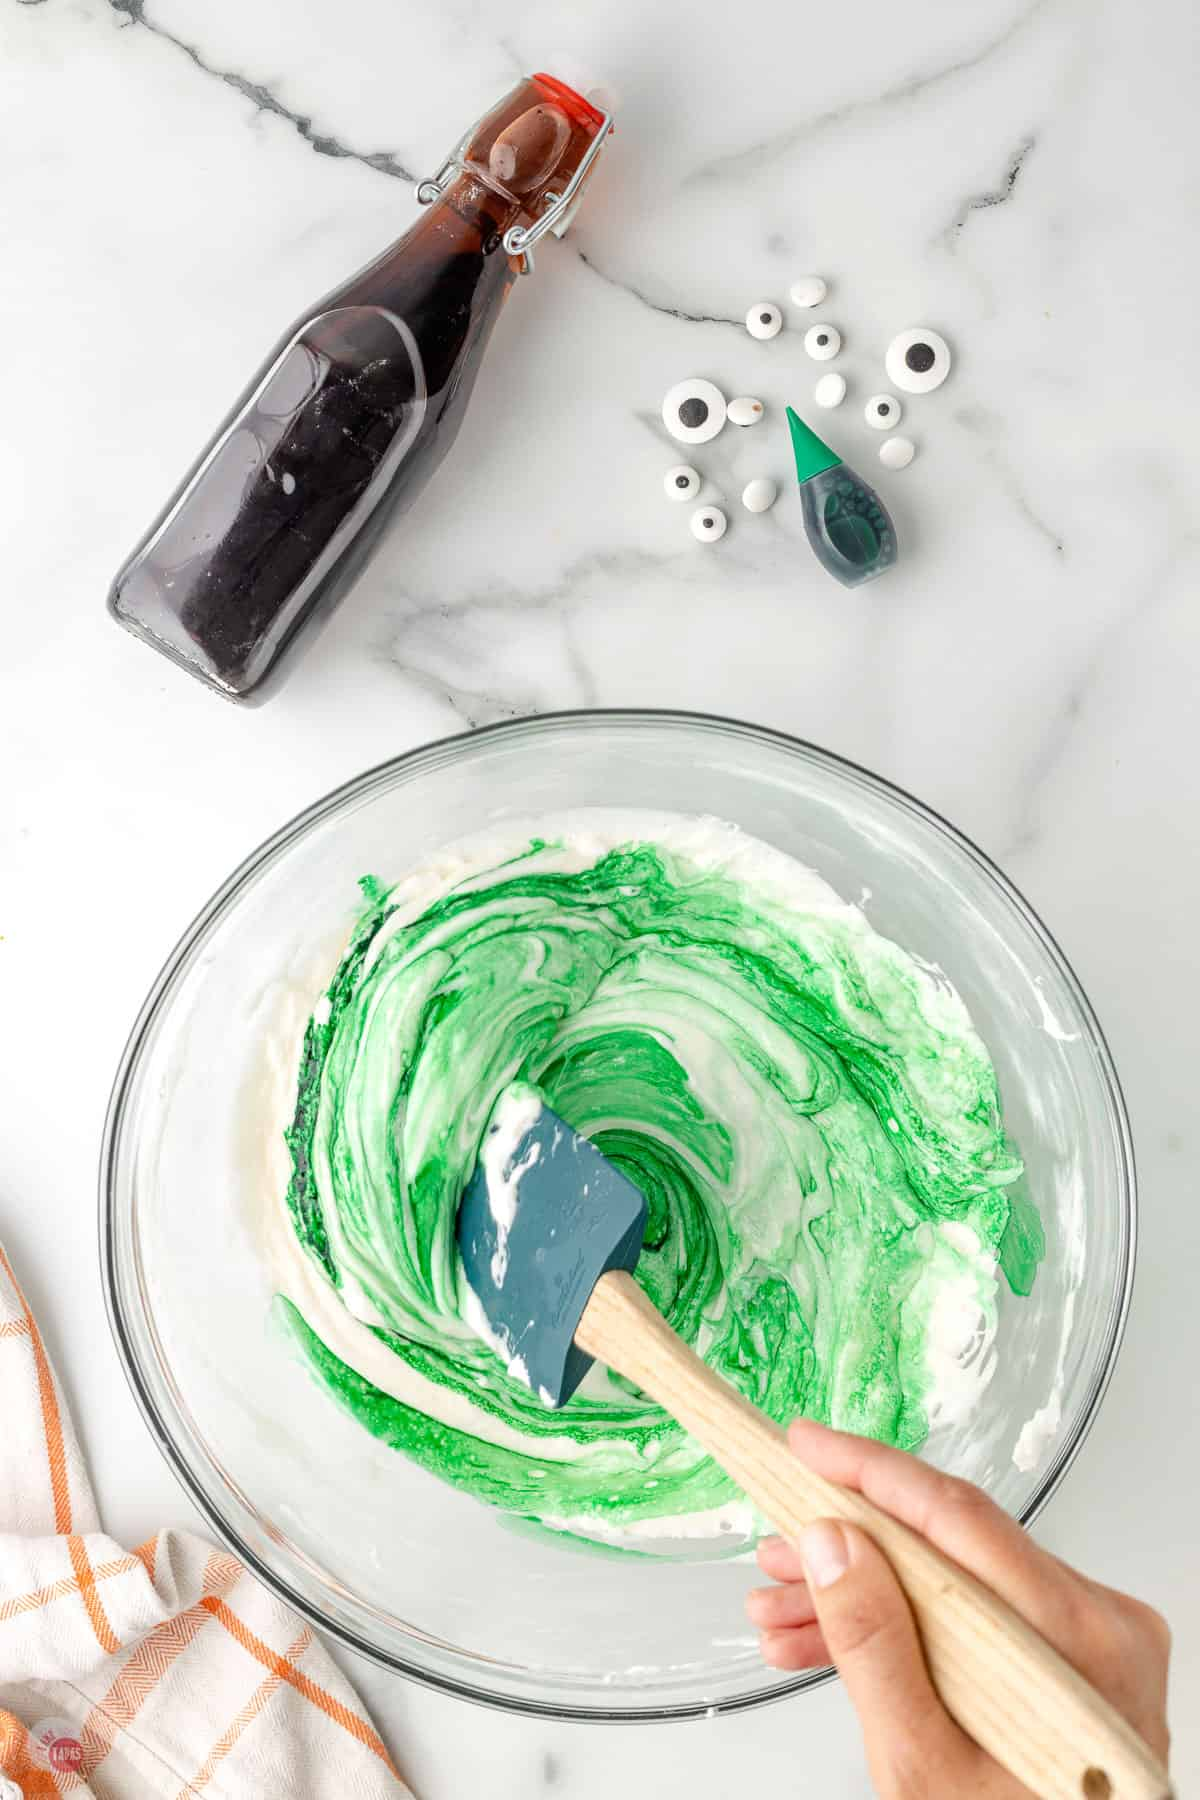 food coloring stirred into a bowl of butter